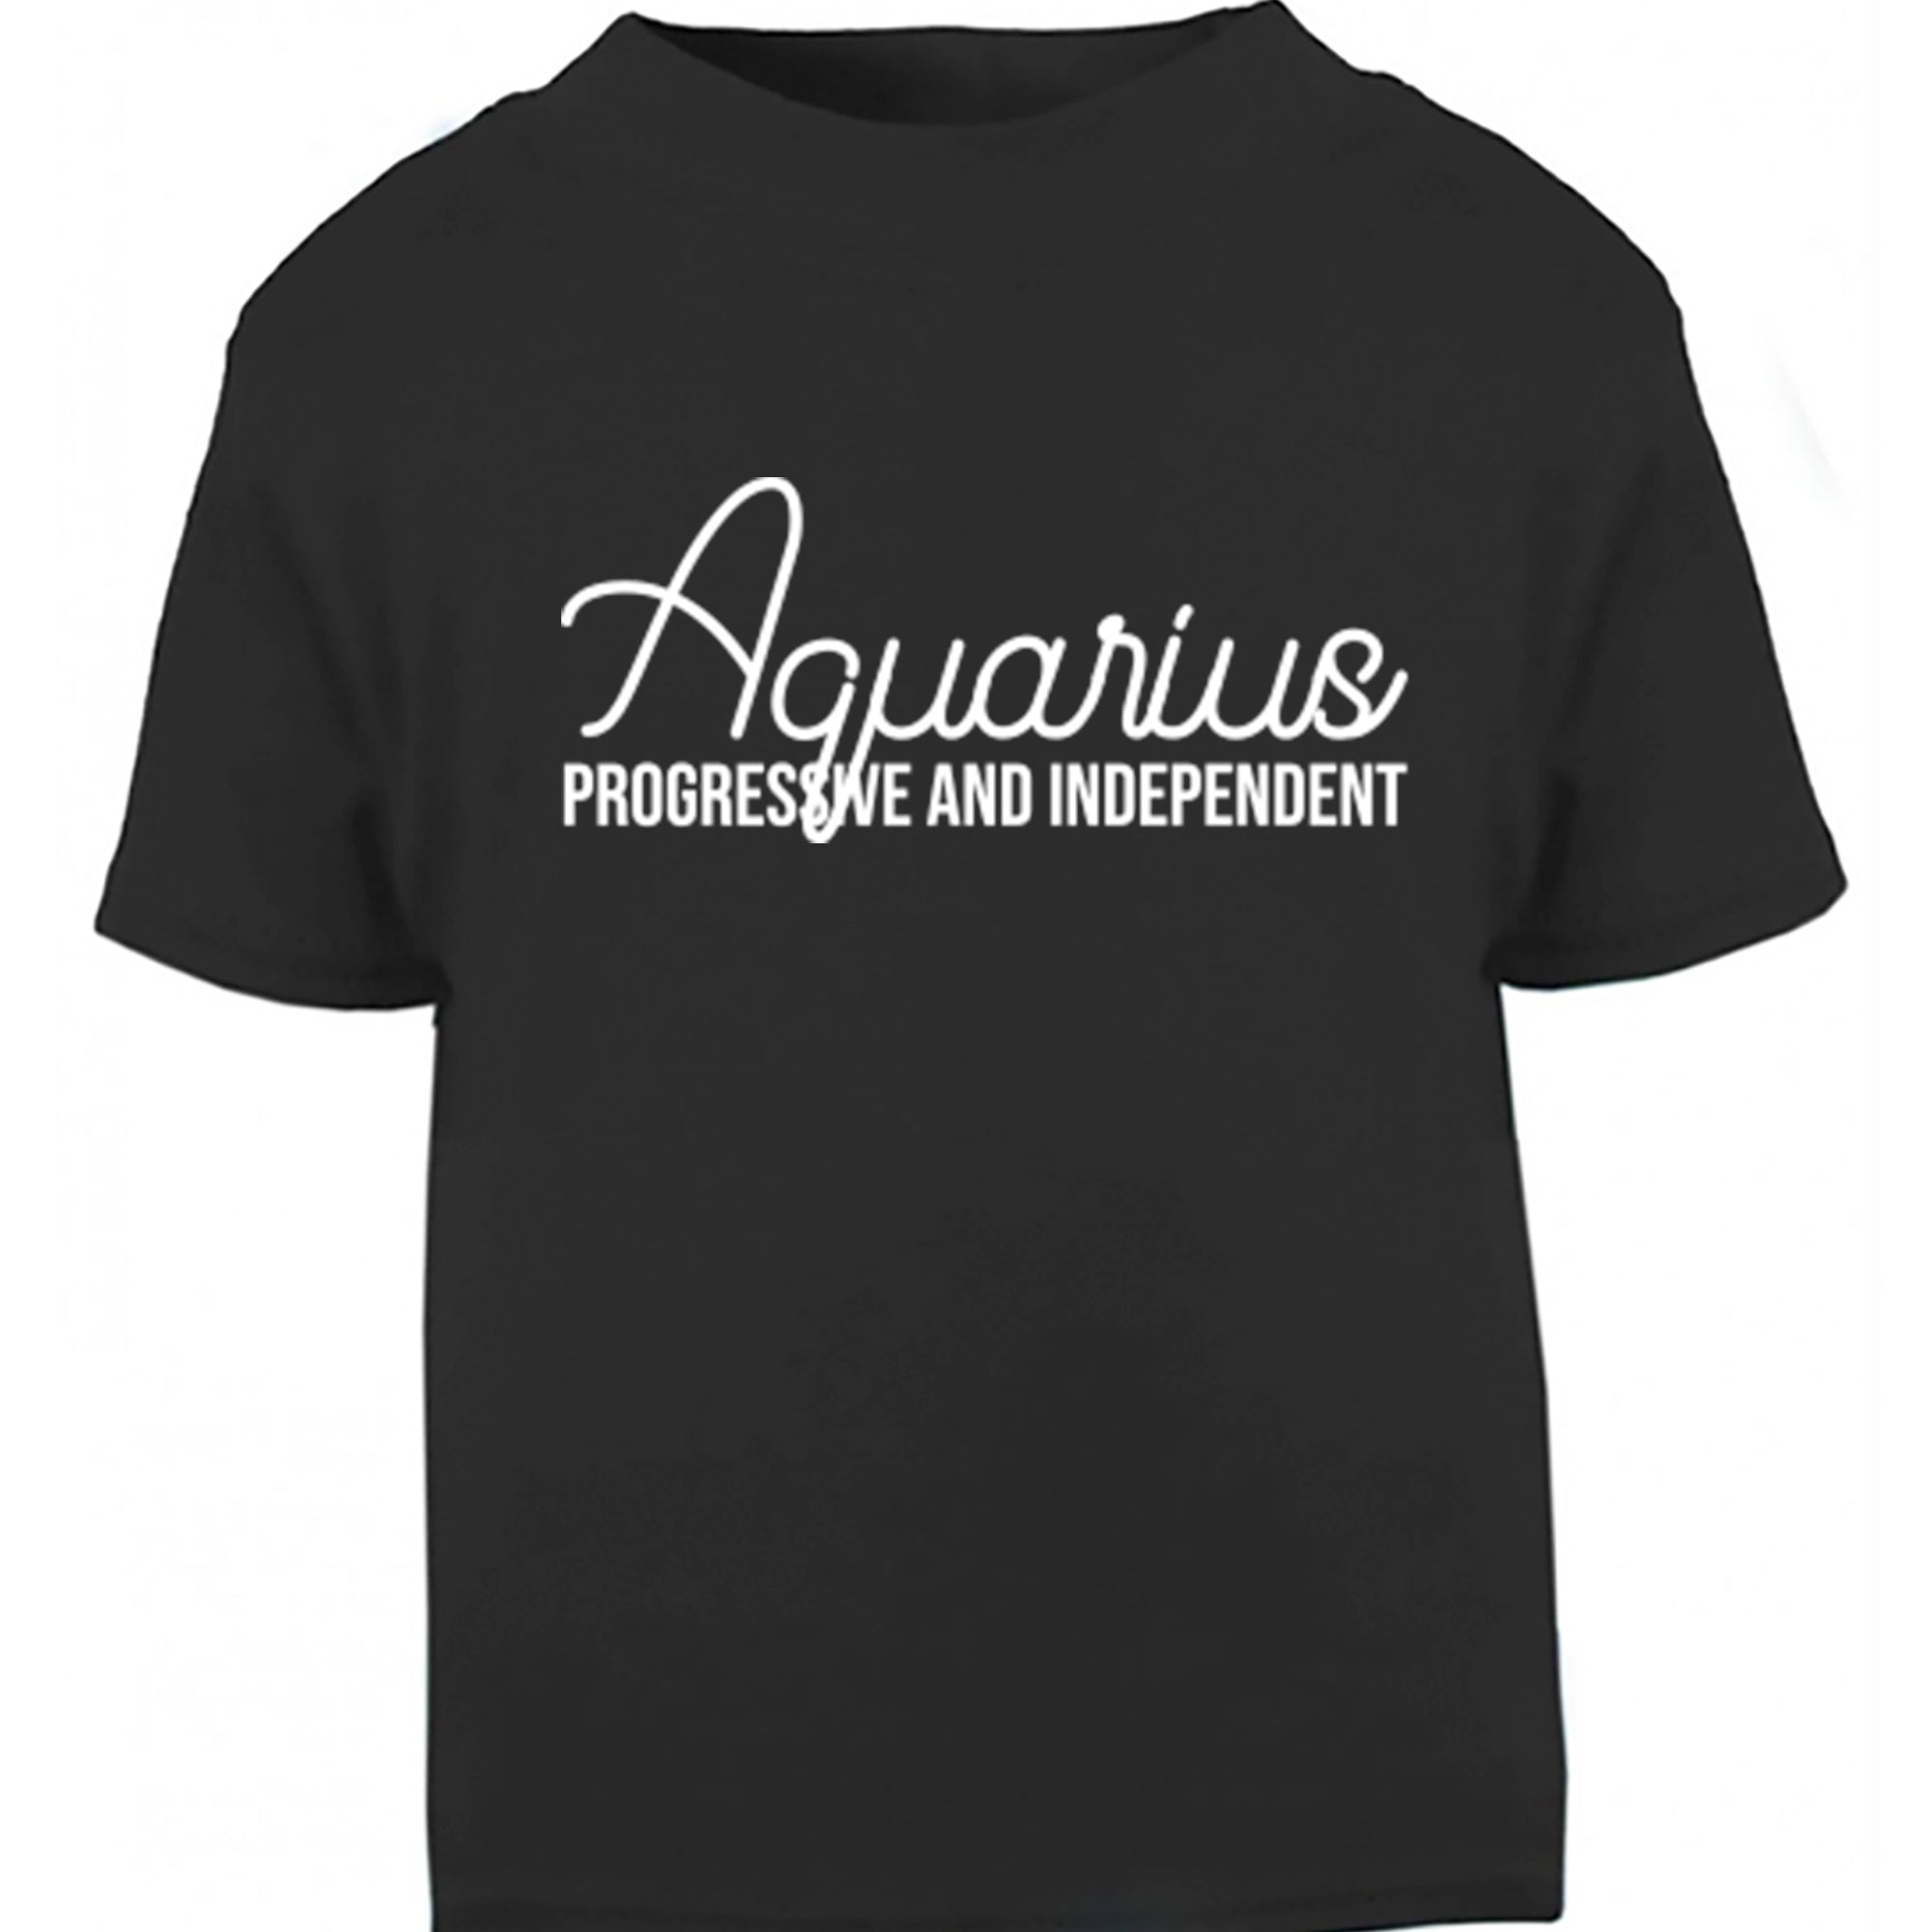 Aquarius, Progressive And Independent Childrens Ages 3/4-12/14 Unisex Fit T-Shirt S0445 - Illustrated Identity Ltd.